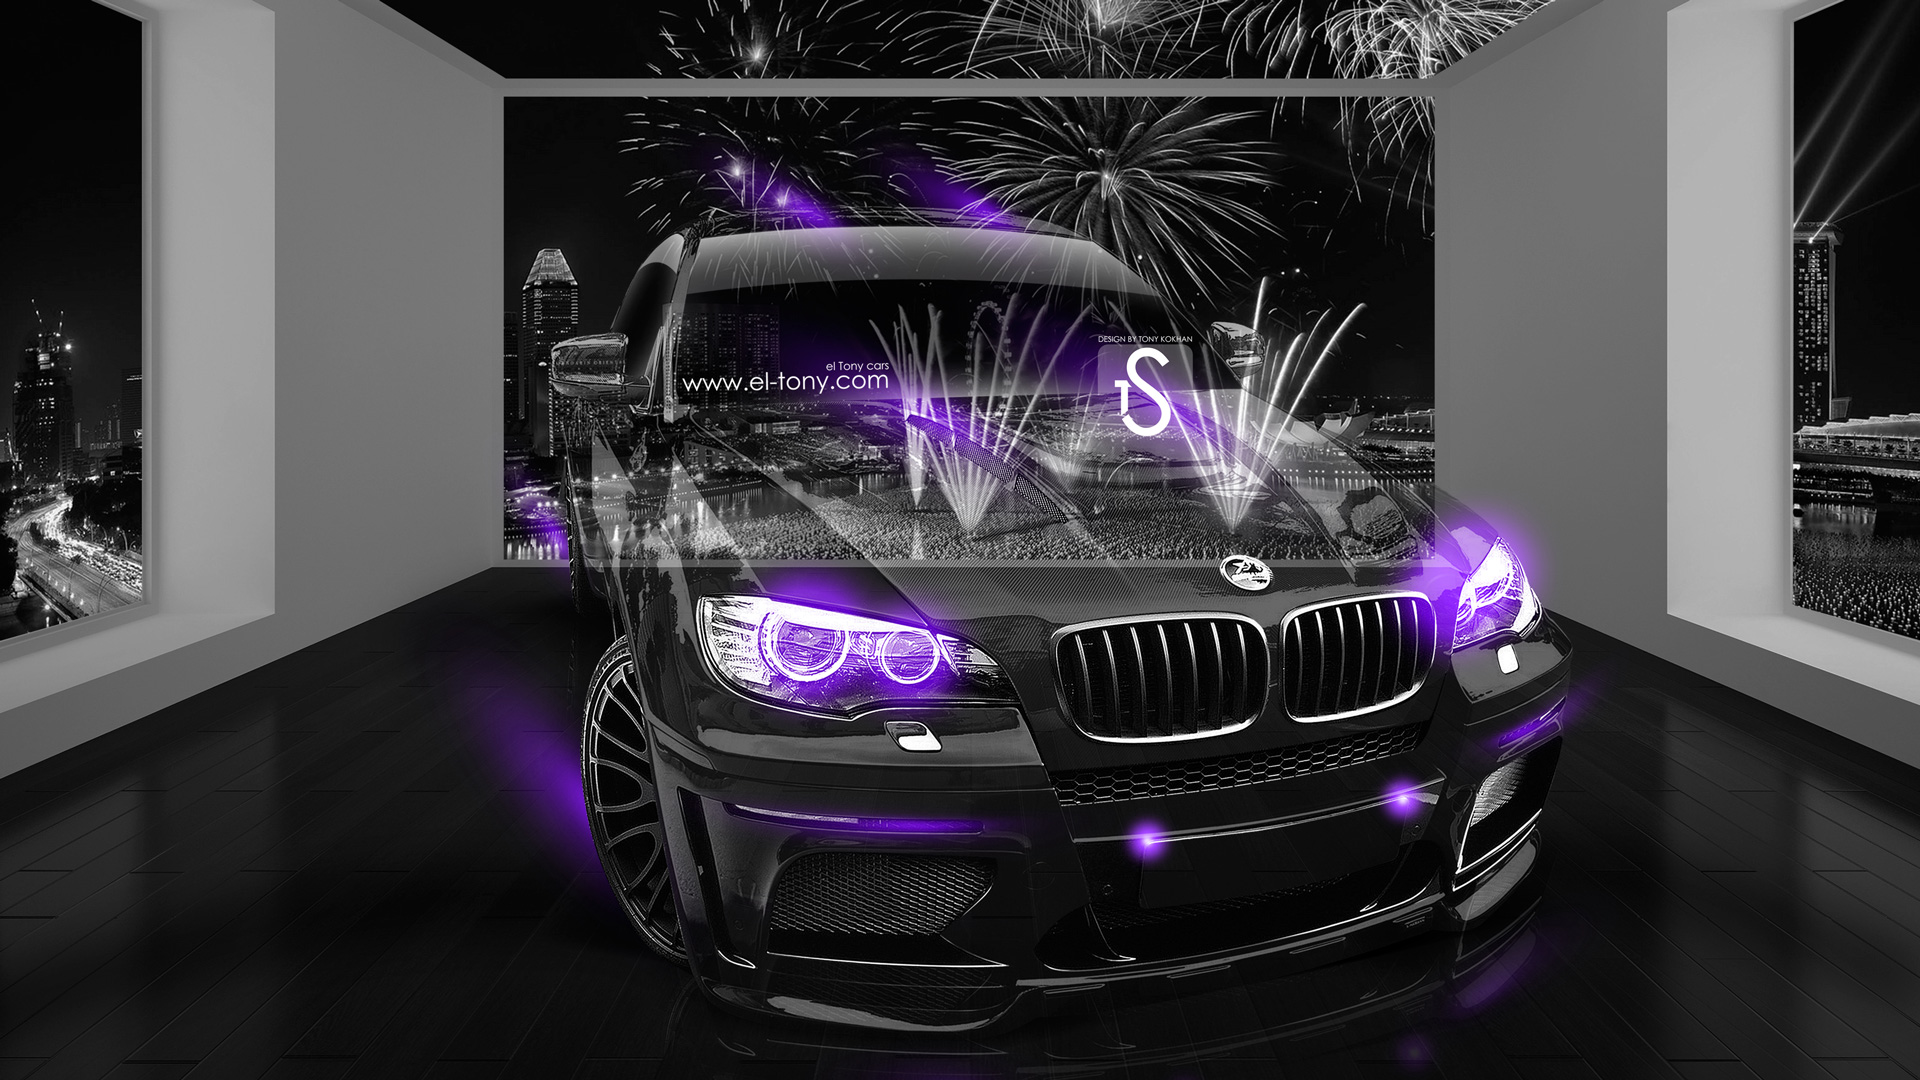 Etonnant BMW X6 Hamann Tuning Crystal Home Car 2014